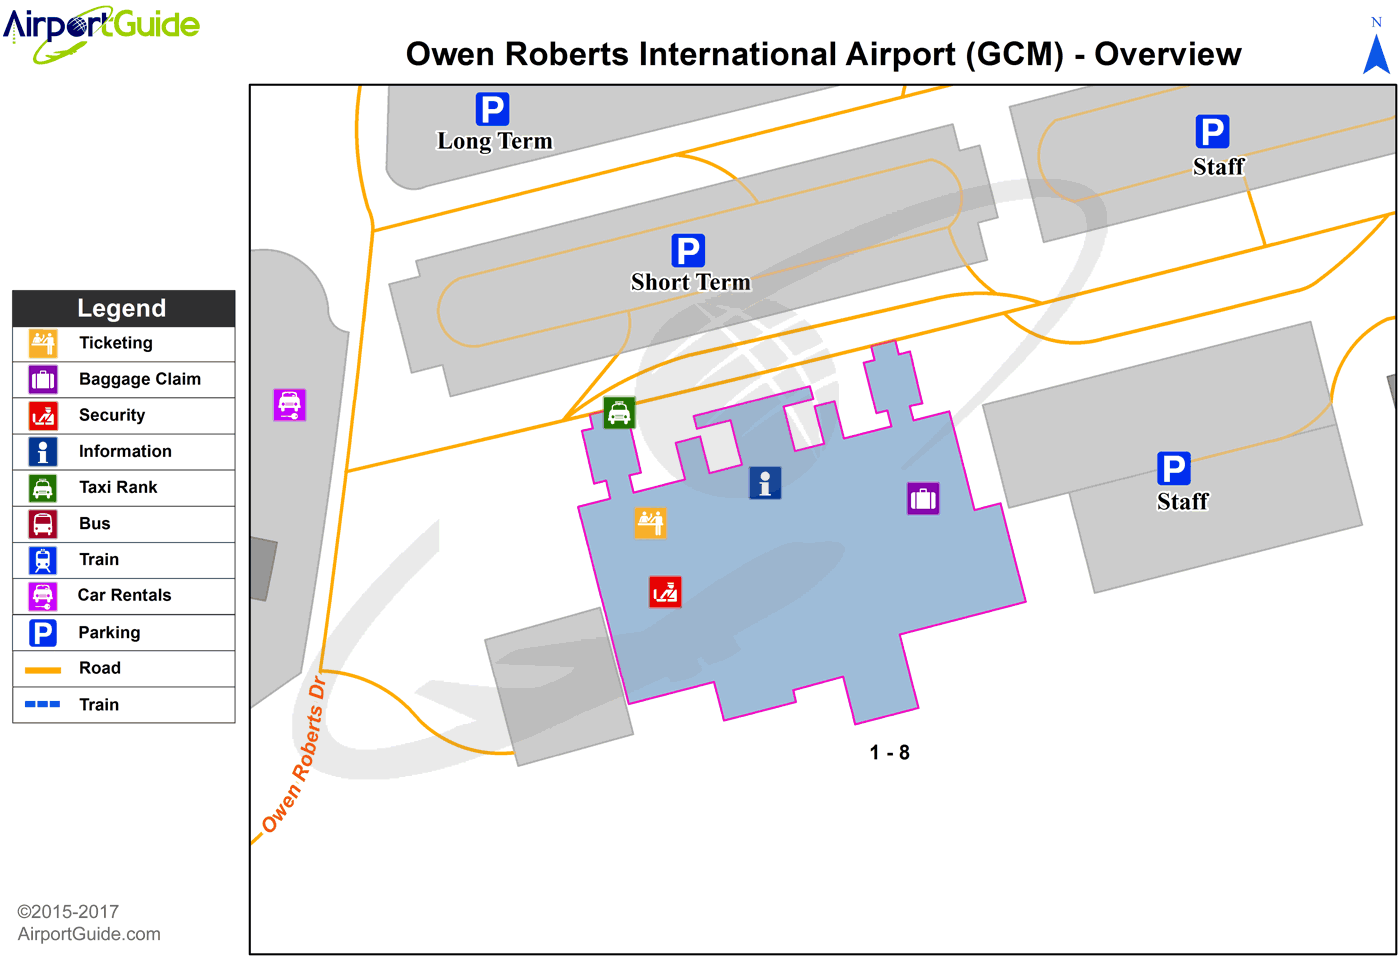 Grand Cayman - Owen Roberts International (GCM) Airport Terminal Map - Overview